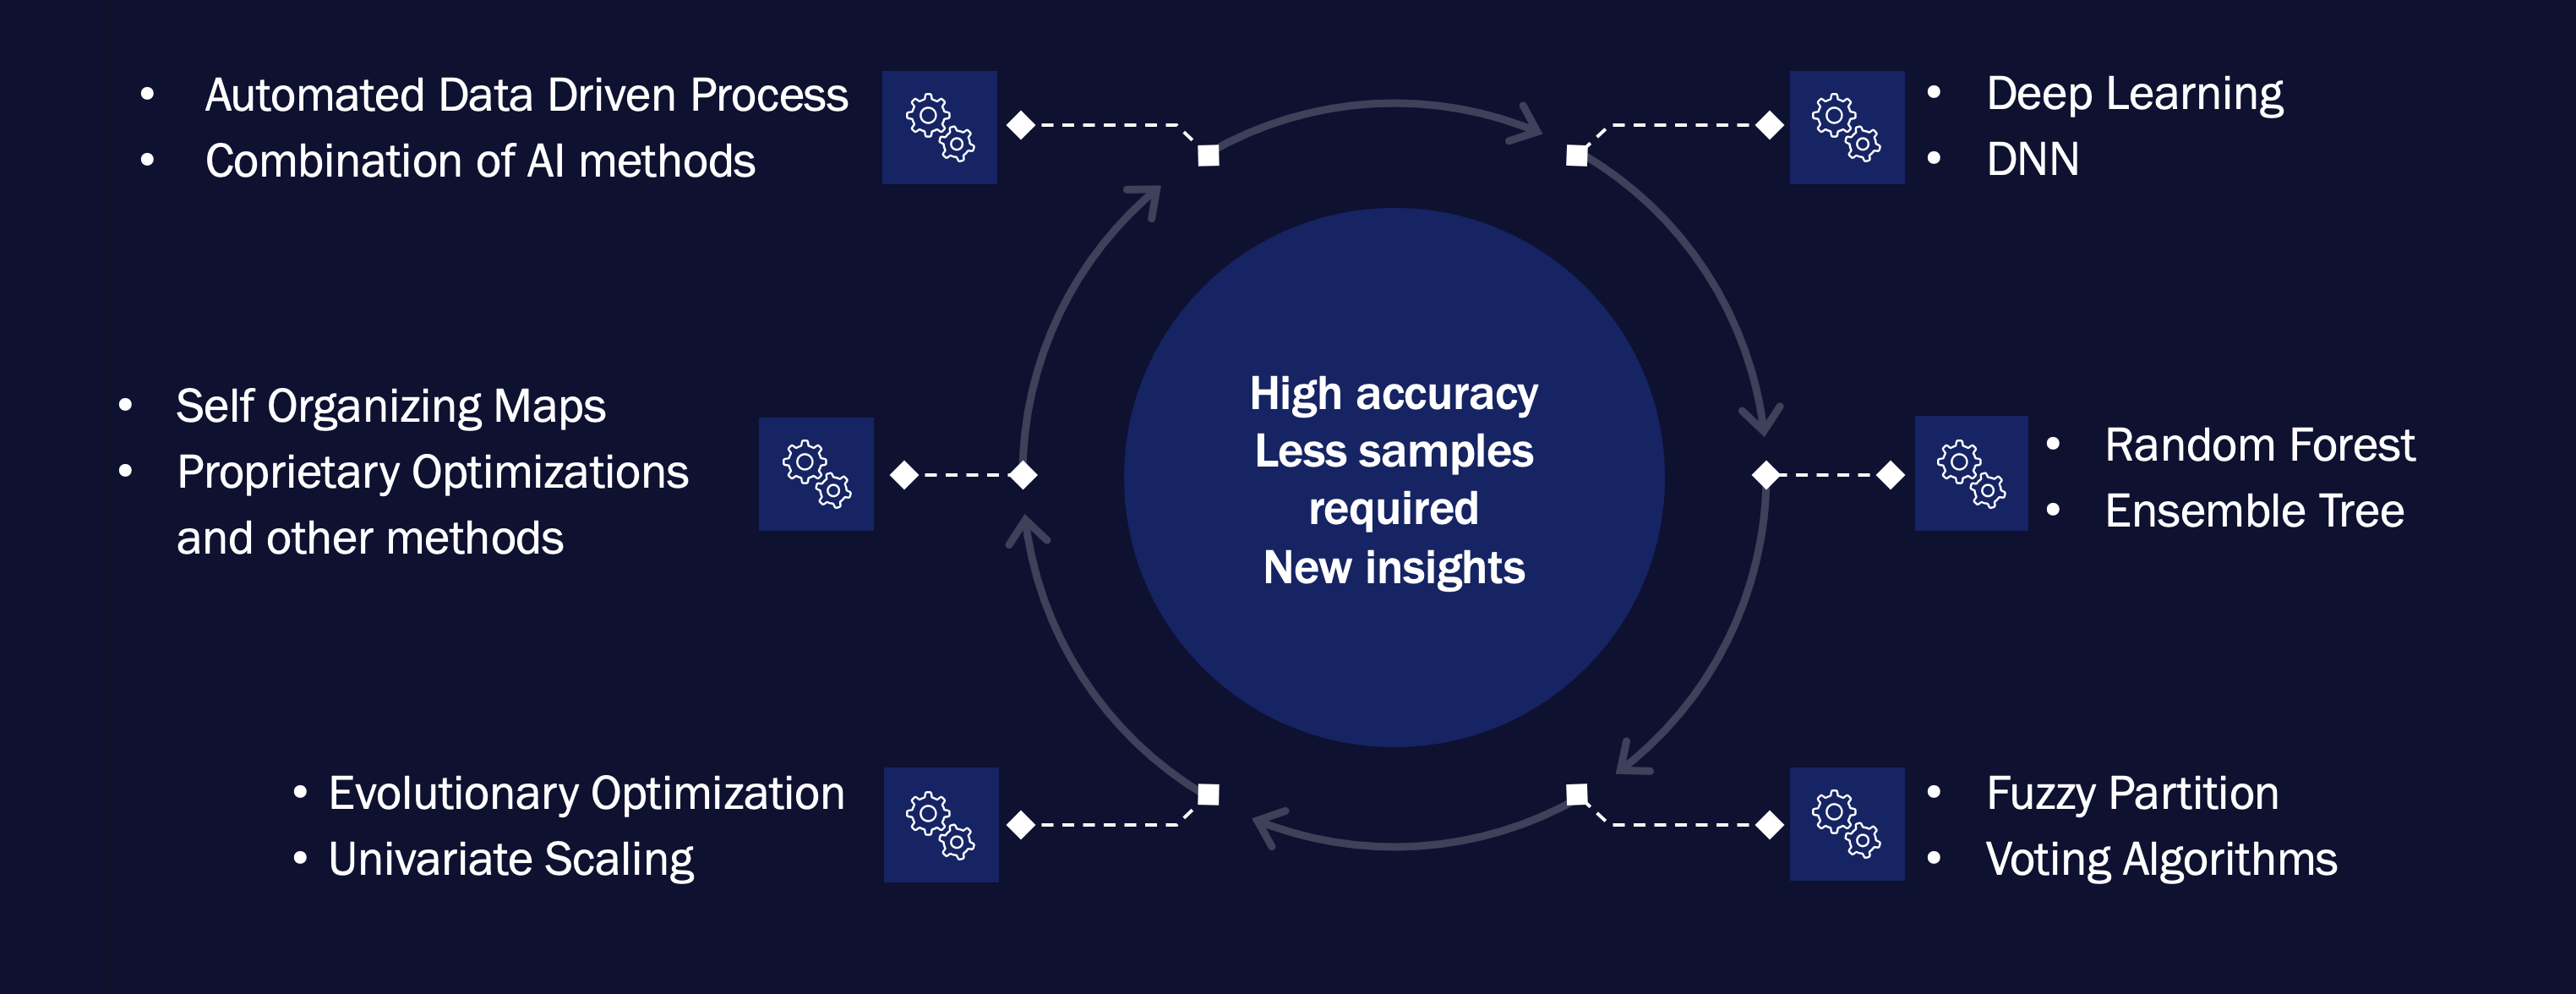 High accuracy, less samples required and new insights, using Deep Learning, DNN, Random Forest, Ensemble Tree, Fuzzy Partition, Voting Algorithms, Evolutionary Optimization, Univariate Scaling, Self-Organizing Maps, Proprietary Optimizations and Other Methods, Automated Data Driven Process and Combination of AI Models